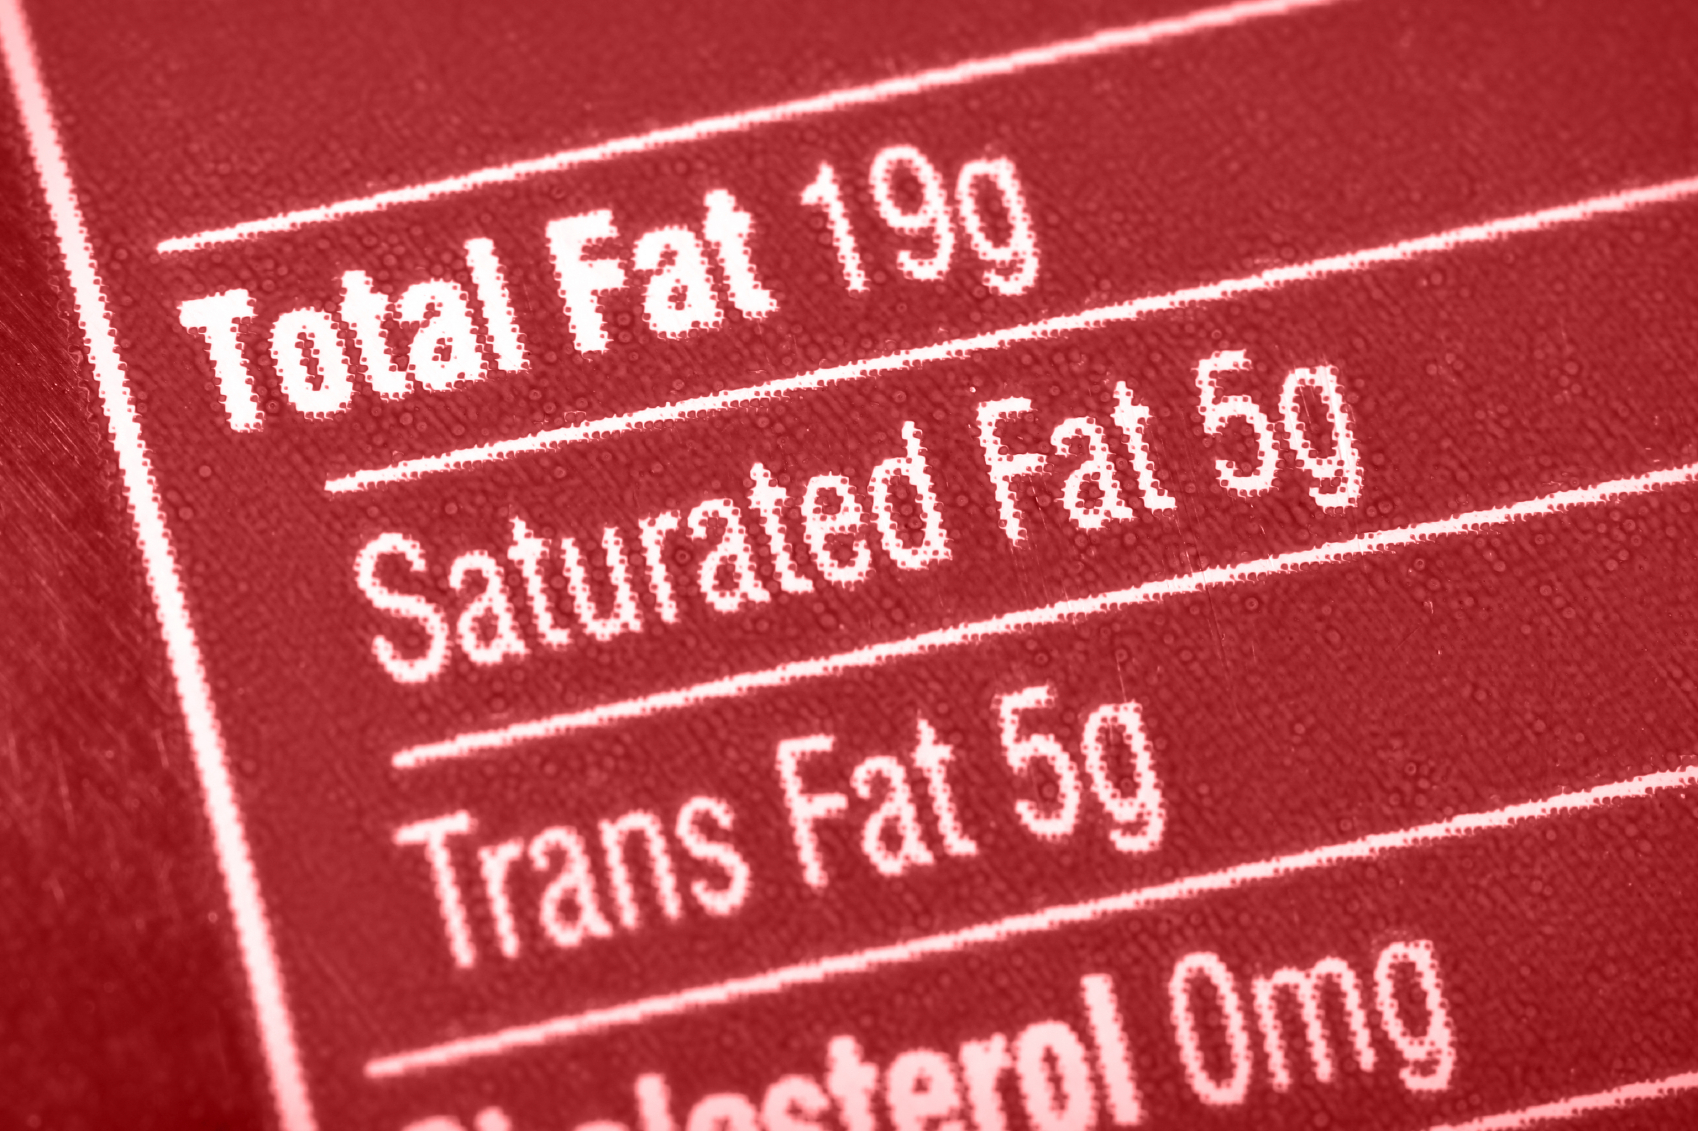 Urge for Industrial Trans Fats to be Removed from Food Supply